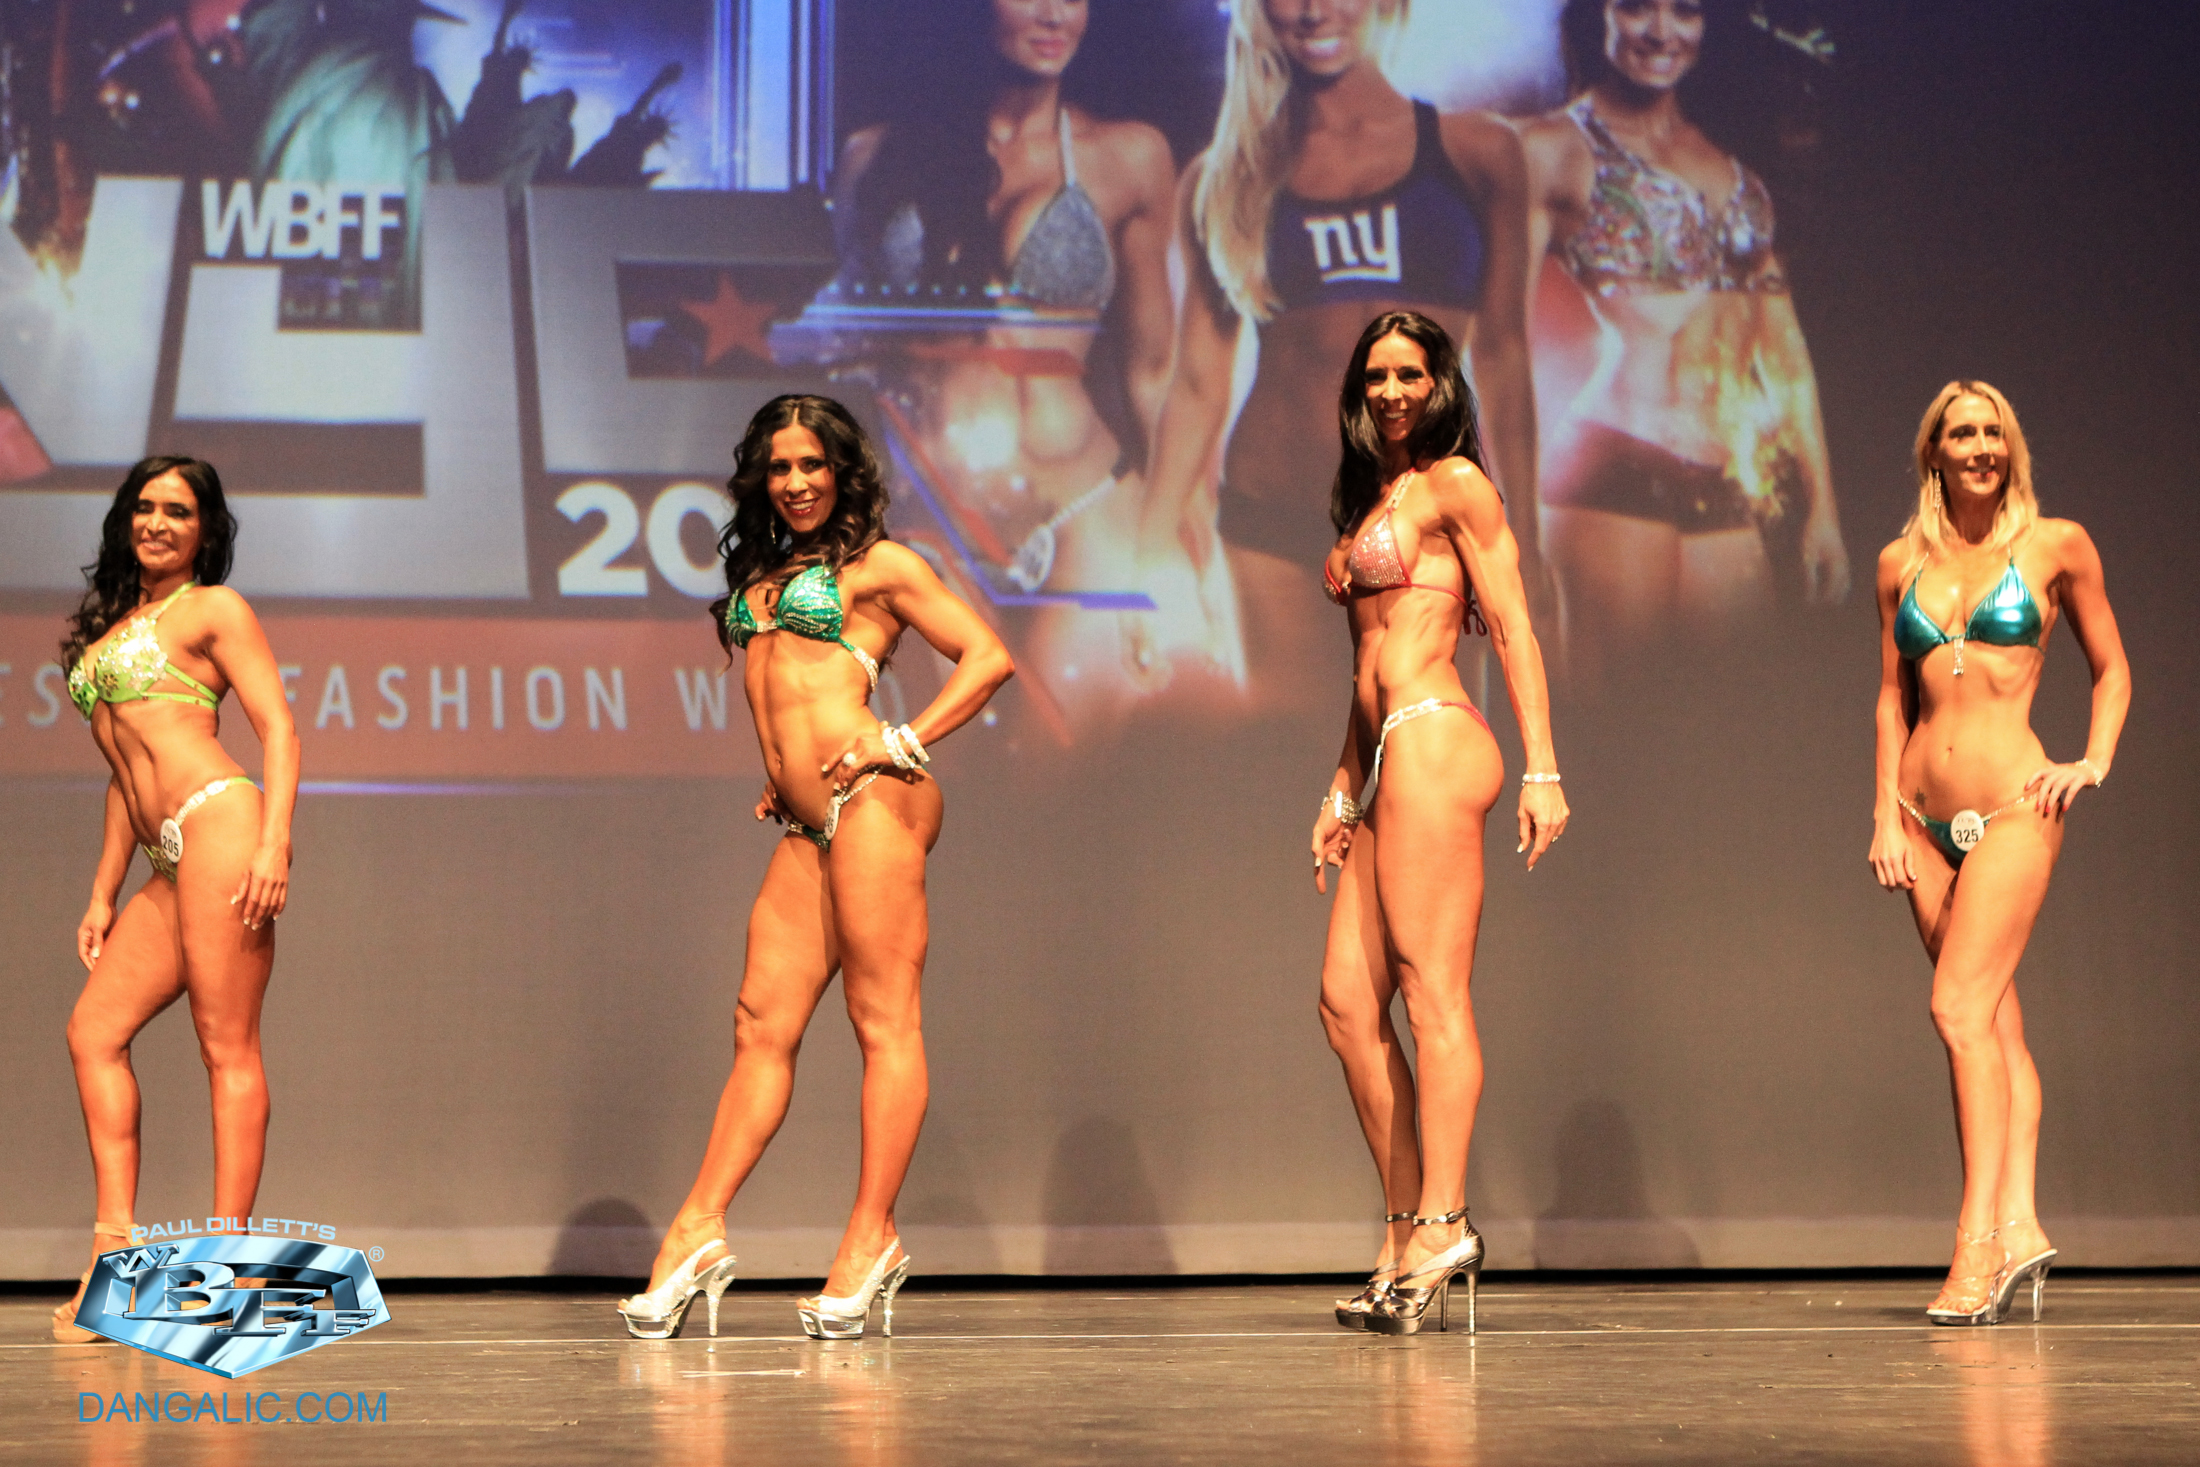 WBFF NYC 2014 - I'm on the right.